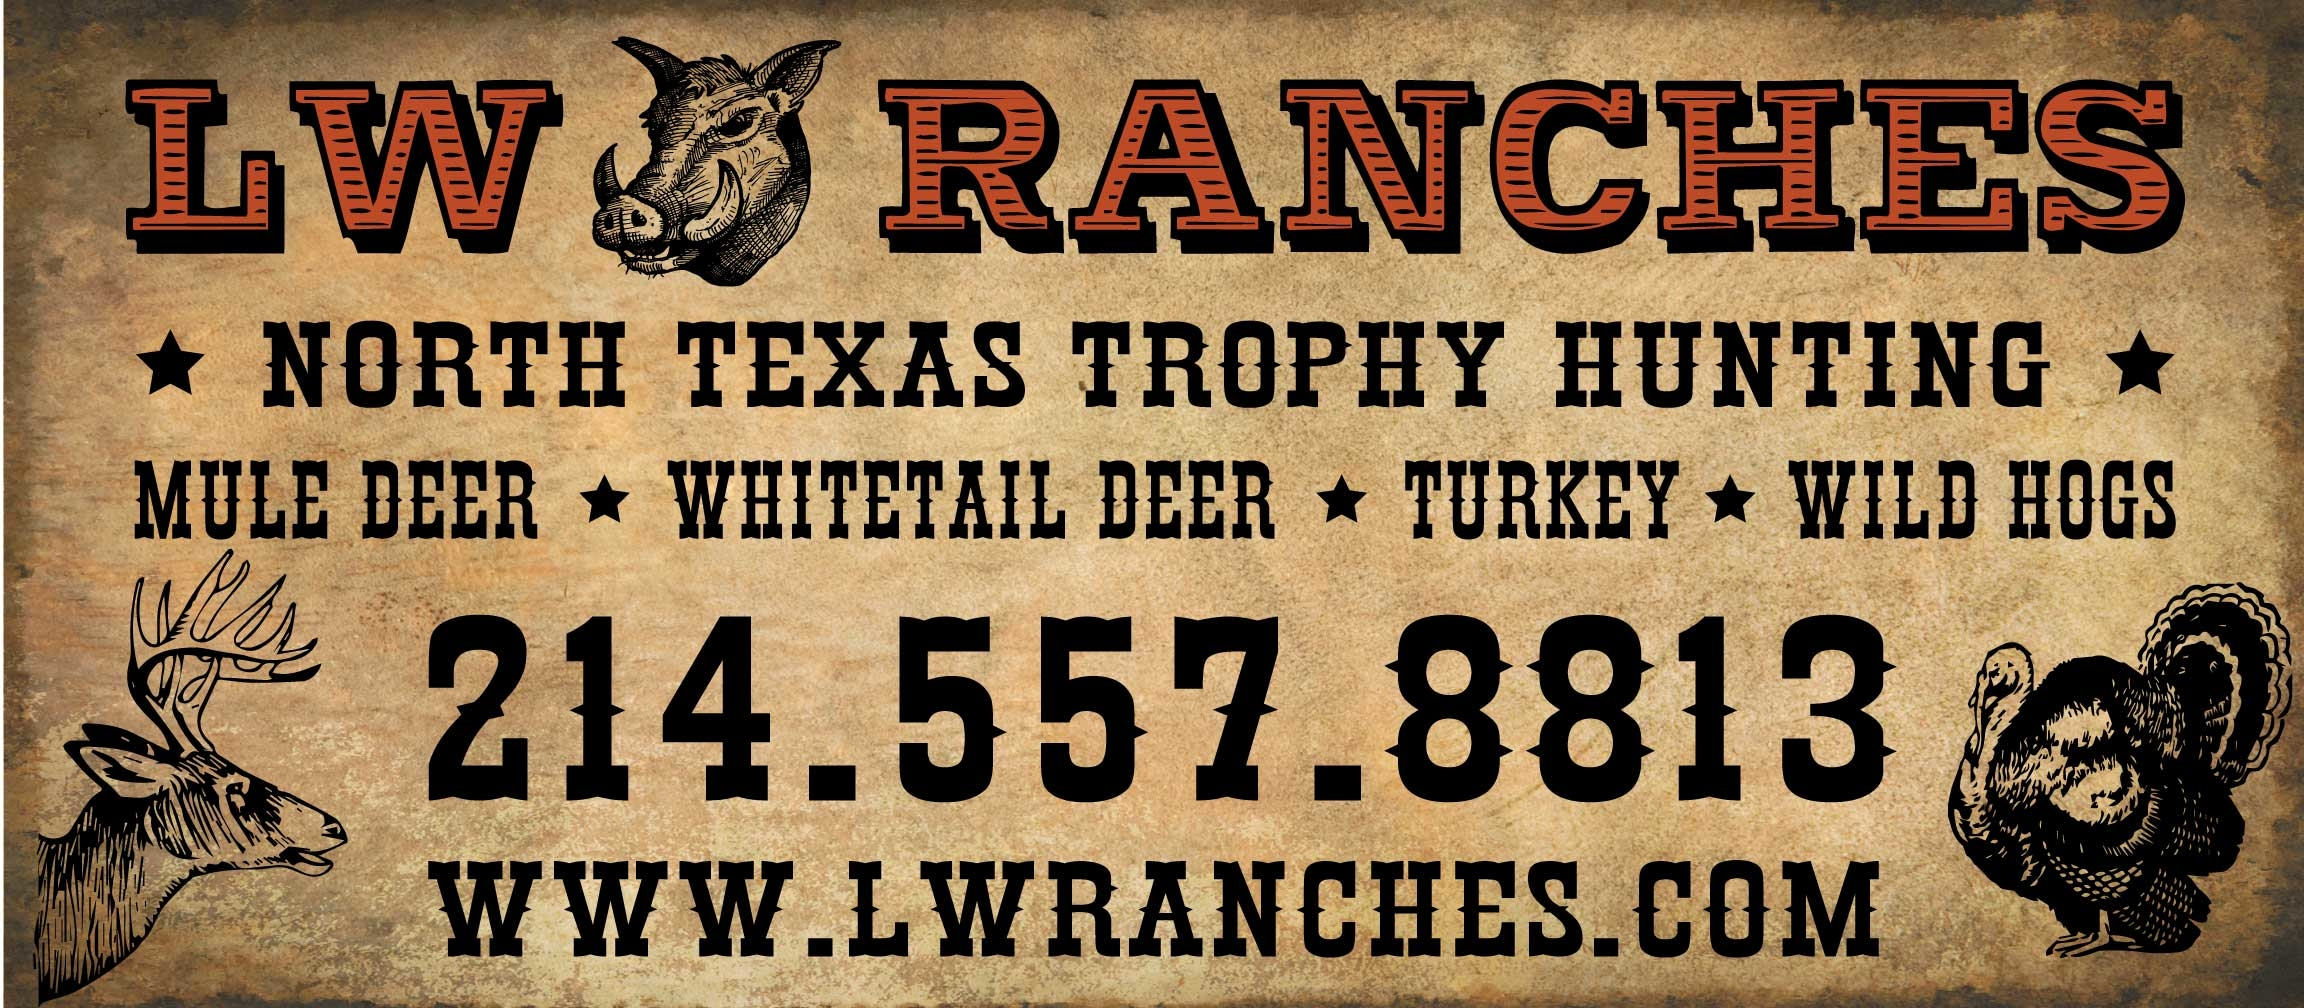 LW Ranches image 1